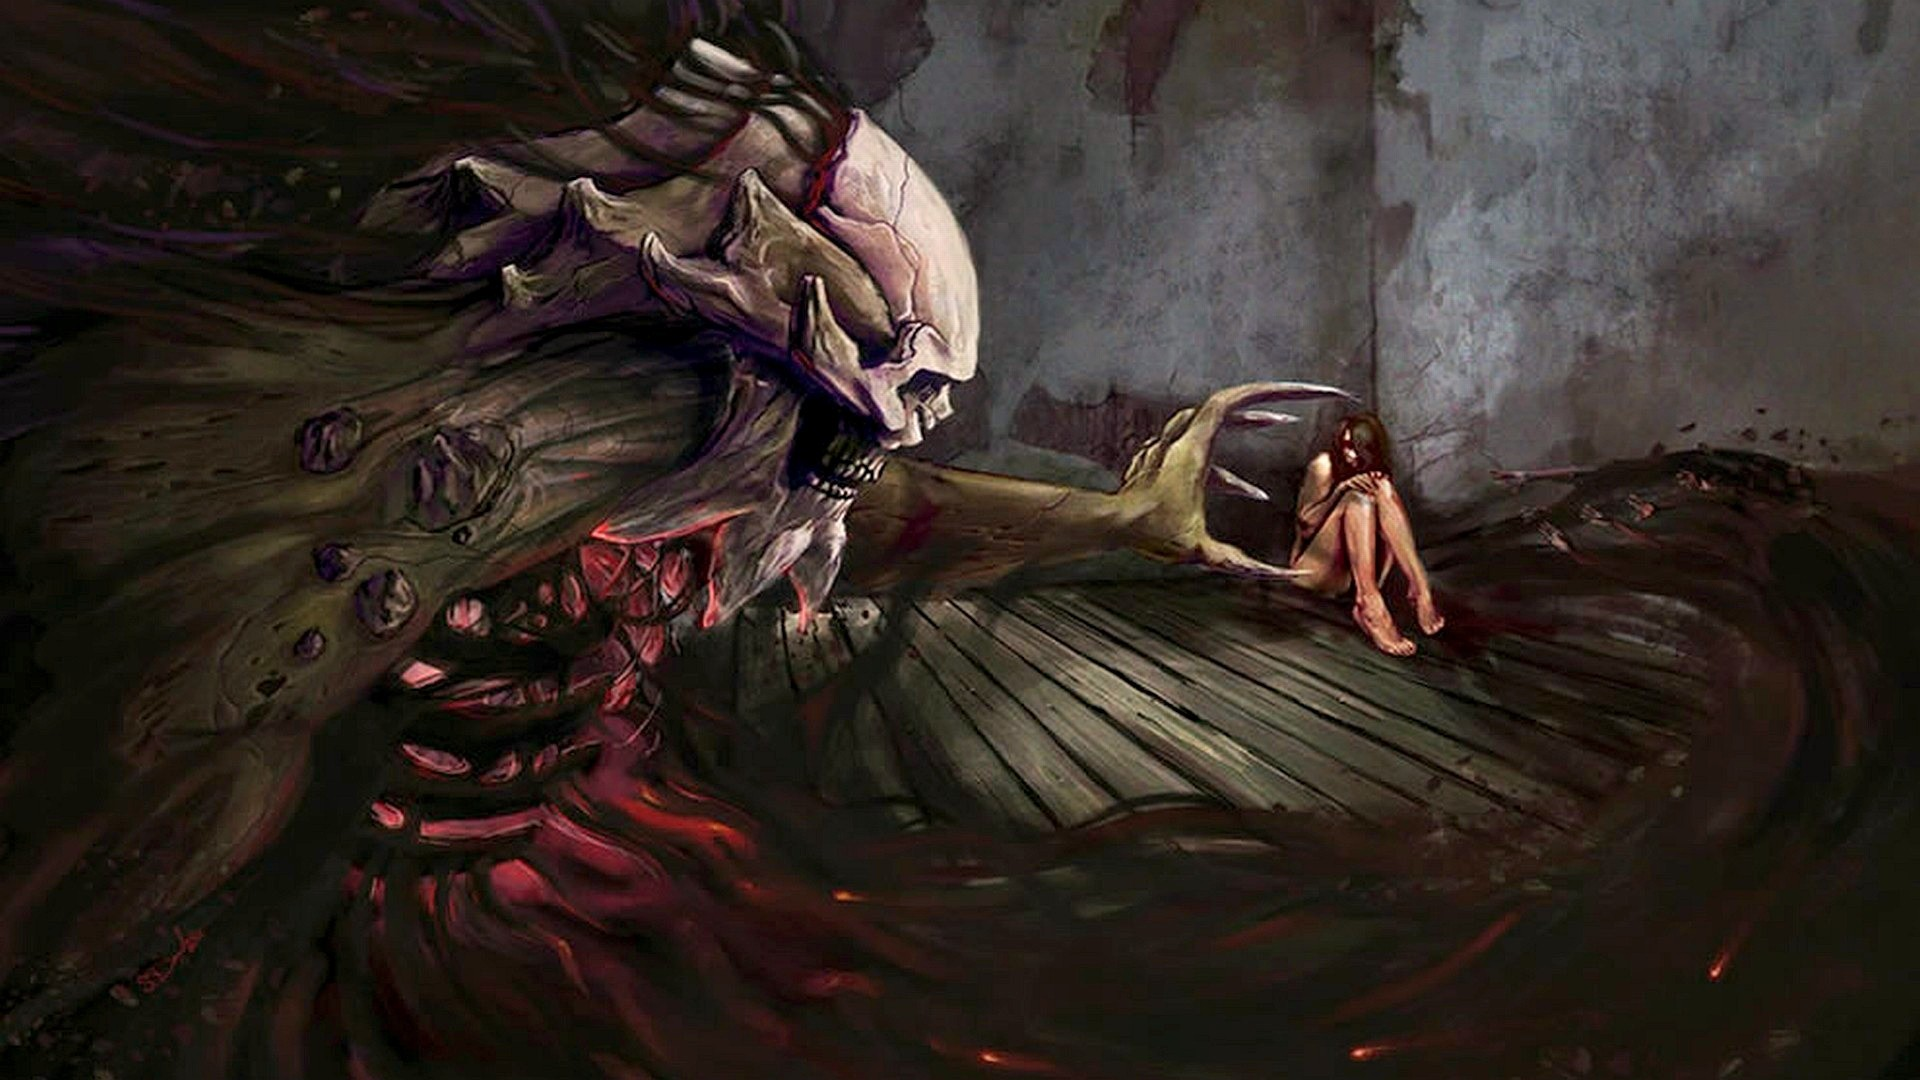 Wallpaper Anime Scary